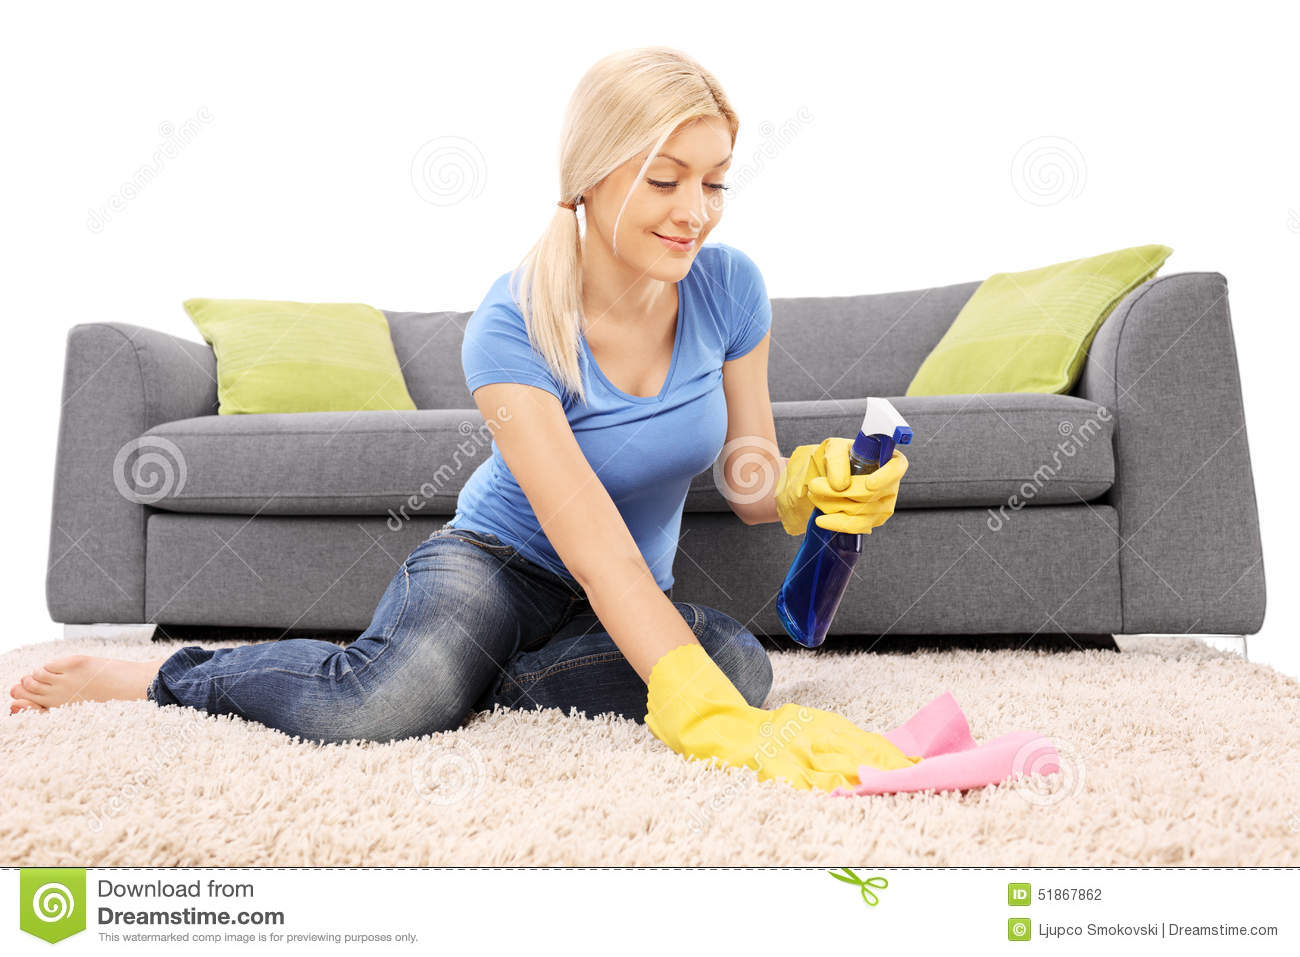 woman-cleaning-carpet-cleaning-spray-studio-shot-blond-wearing-yellow-protective-gloves-front-gray-sofa-51867862.jpg